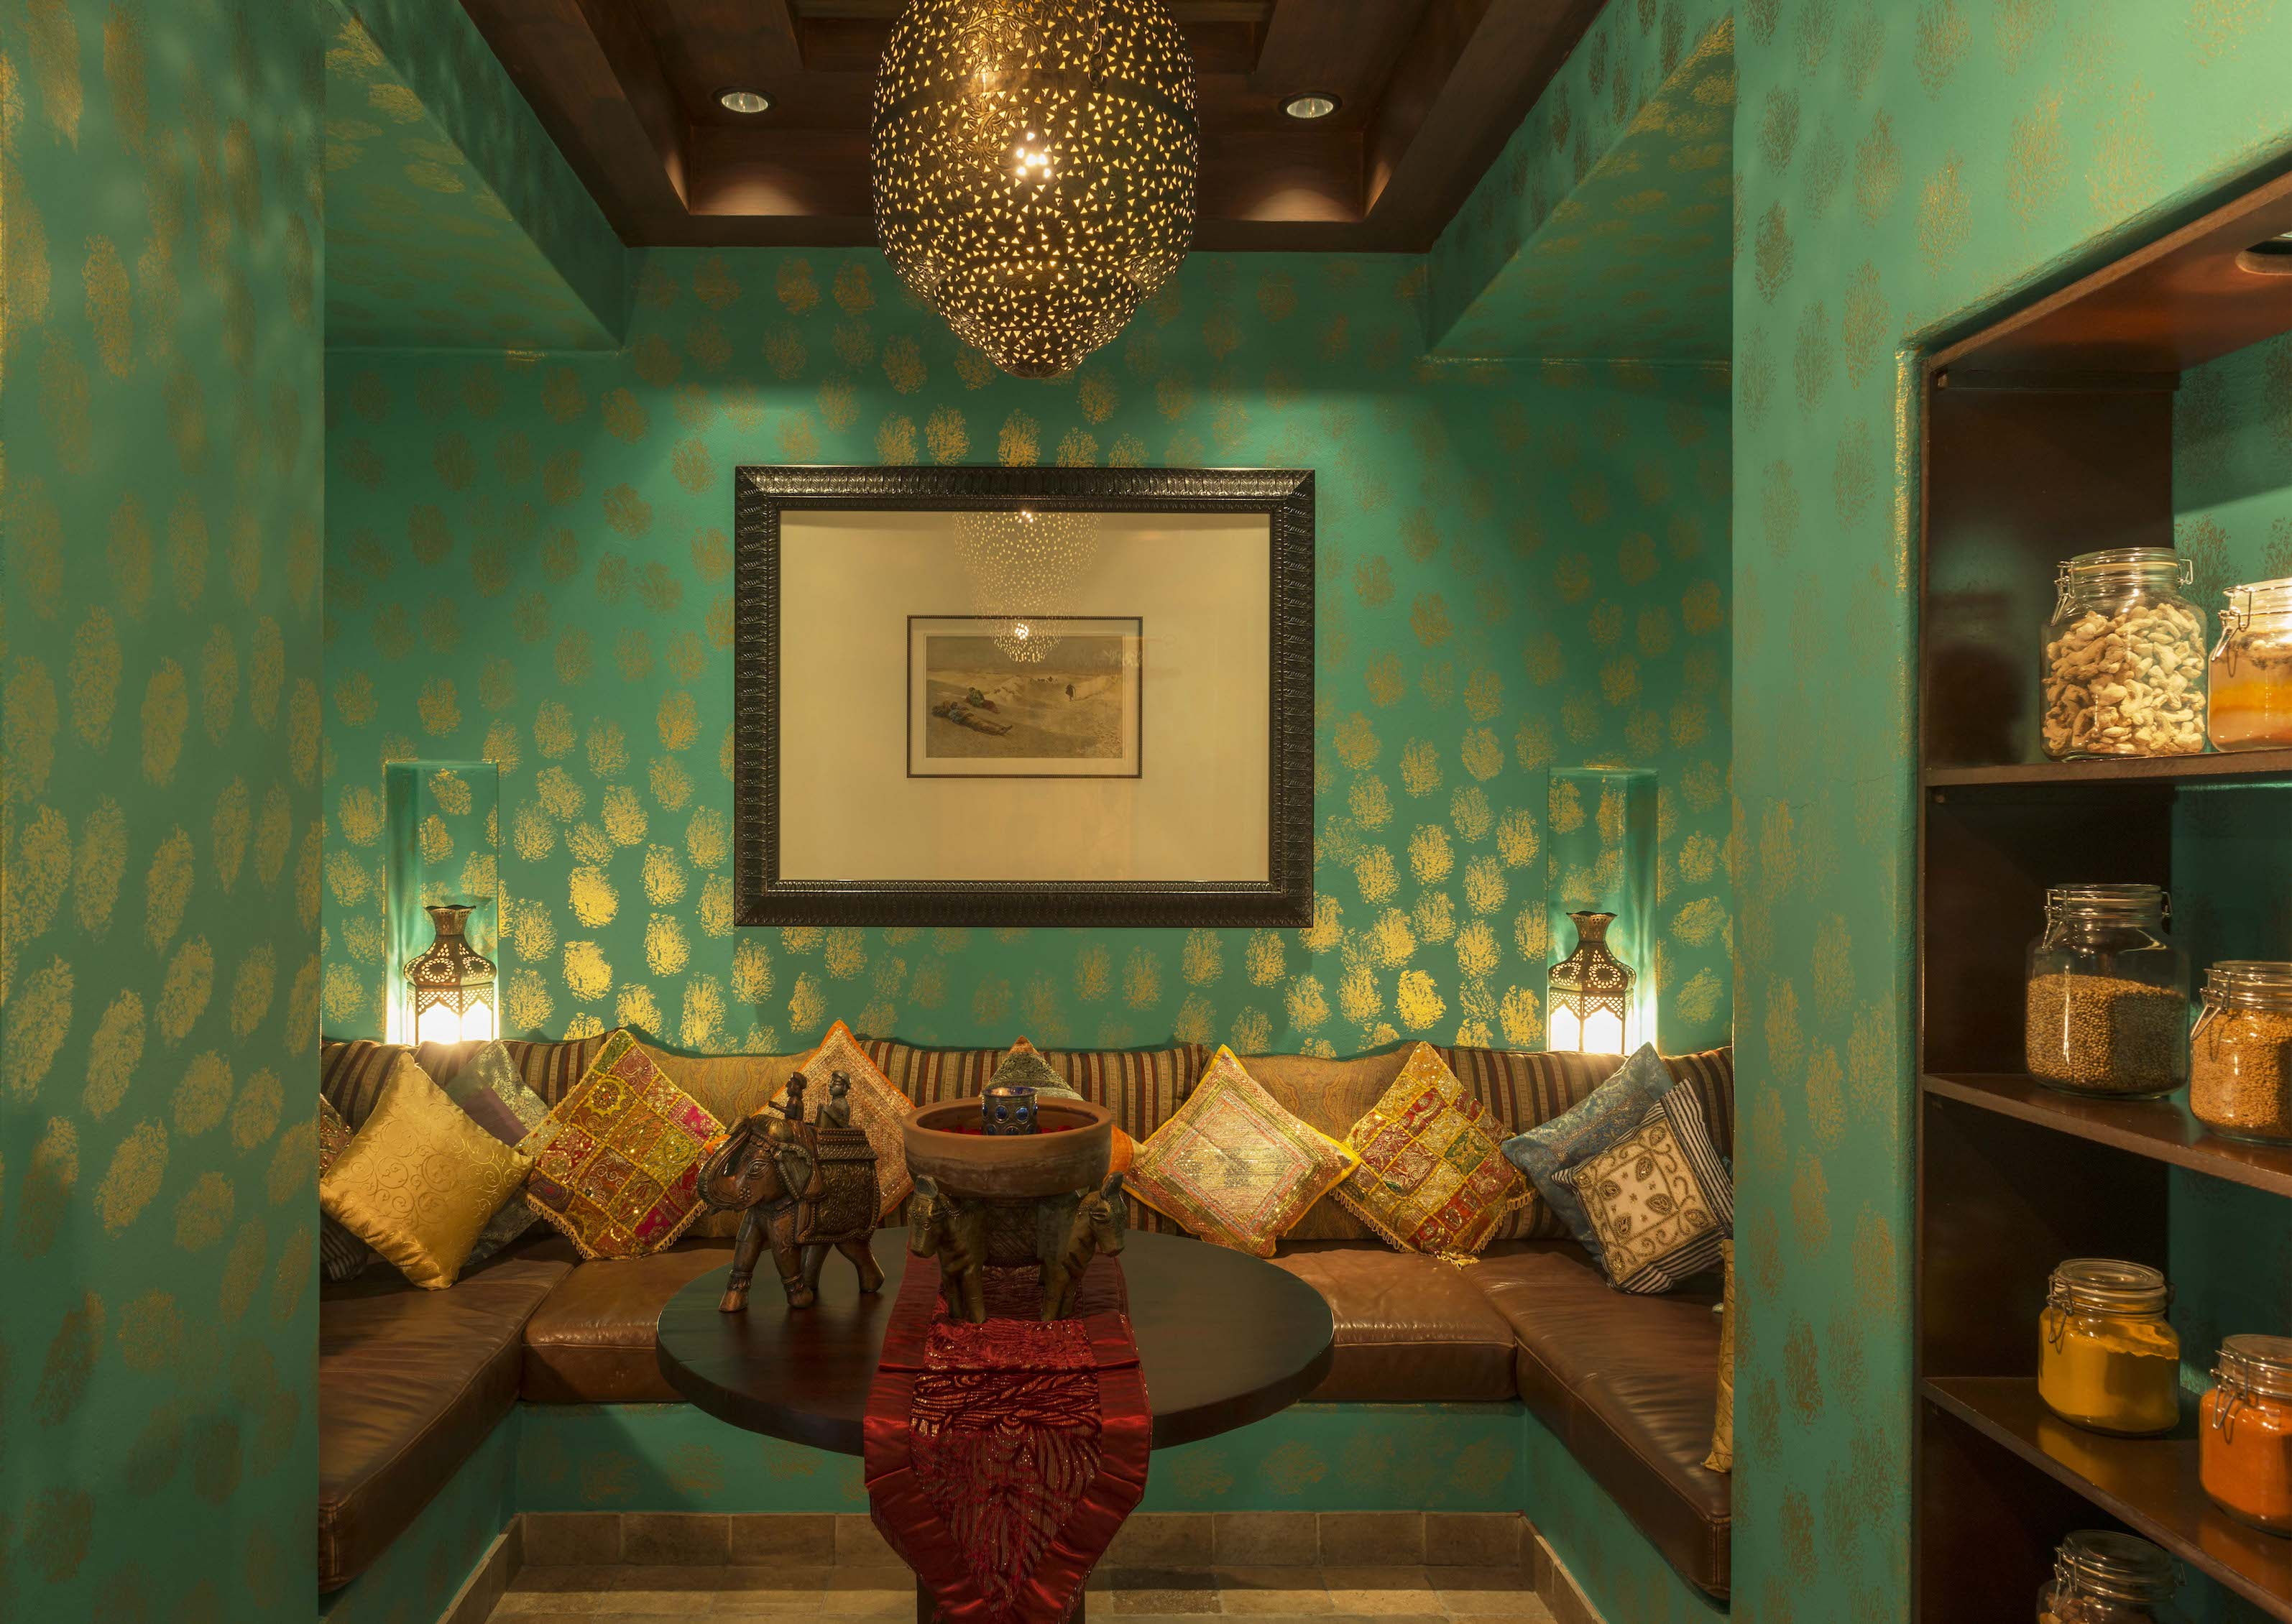 Pic 6 - Masala Entrance Area